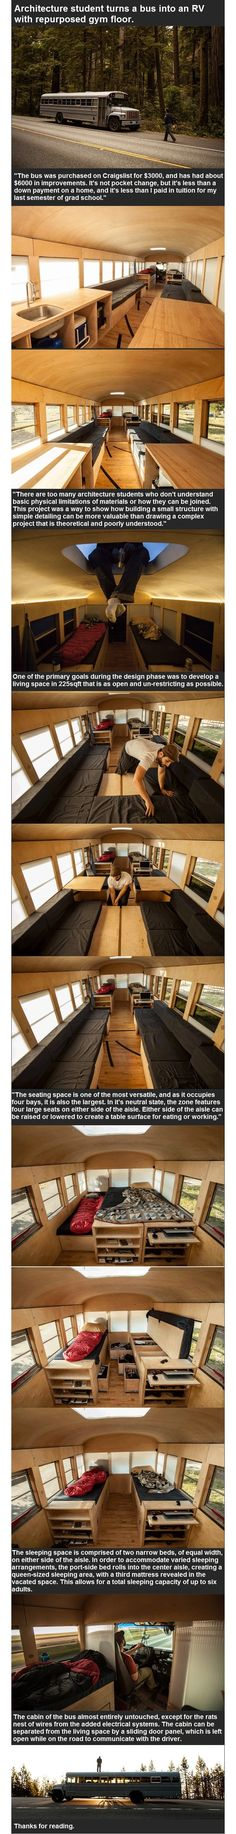 Brilliant #smallhouse living: Arch Student creates a home in a bus  w repurposed materials @Talv58 (u might like this)